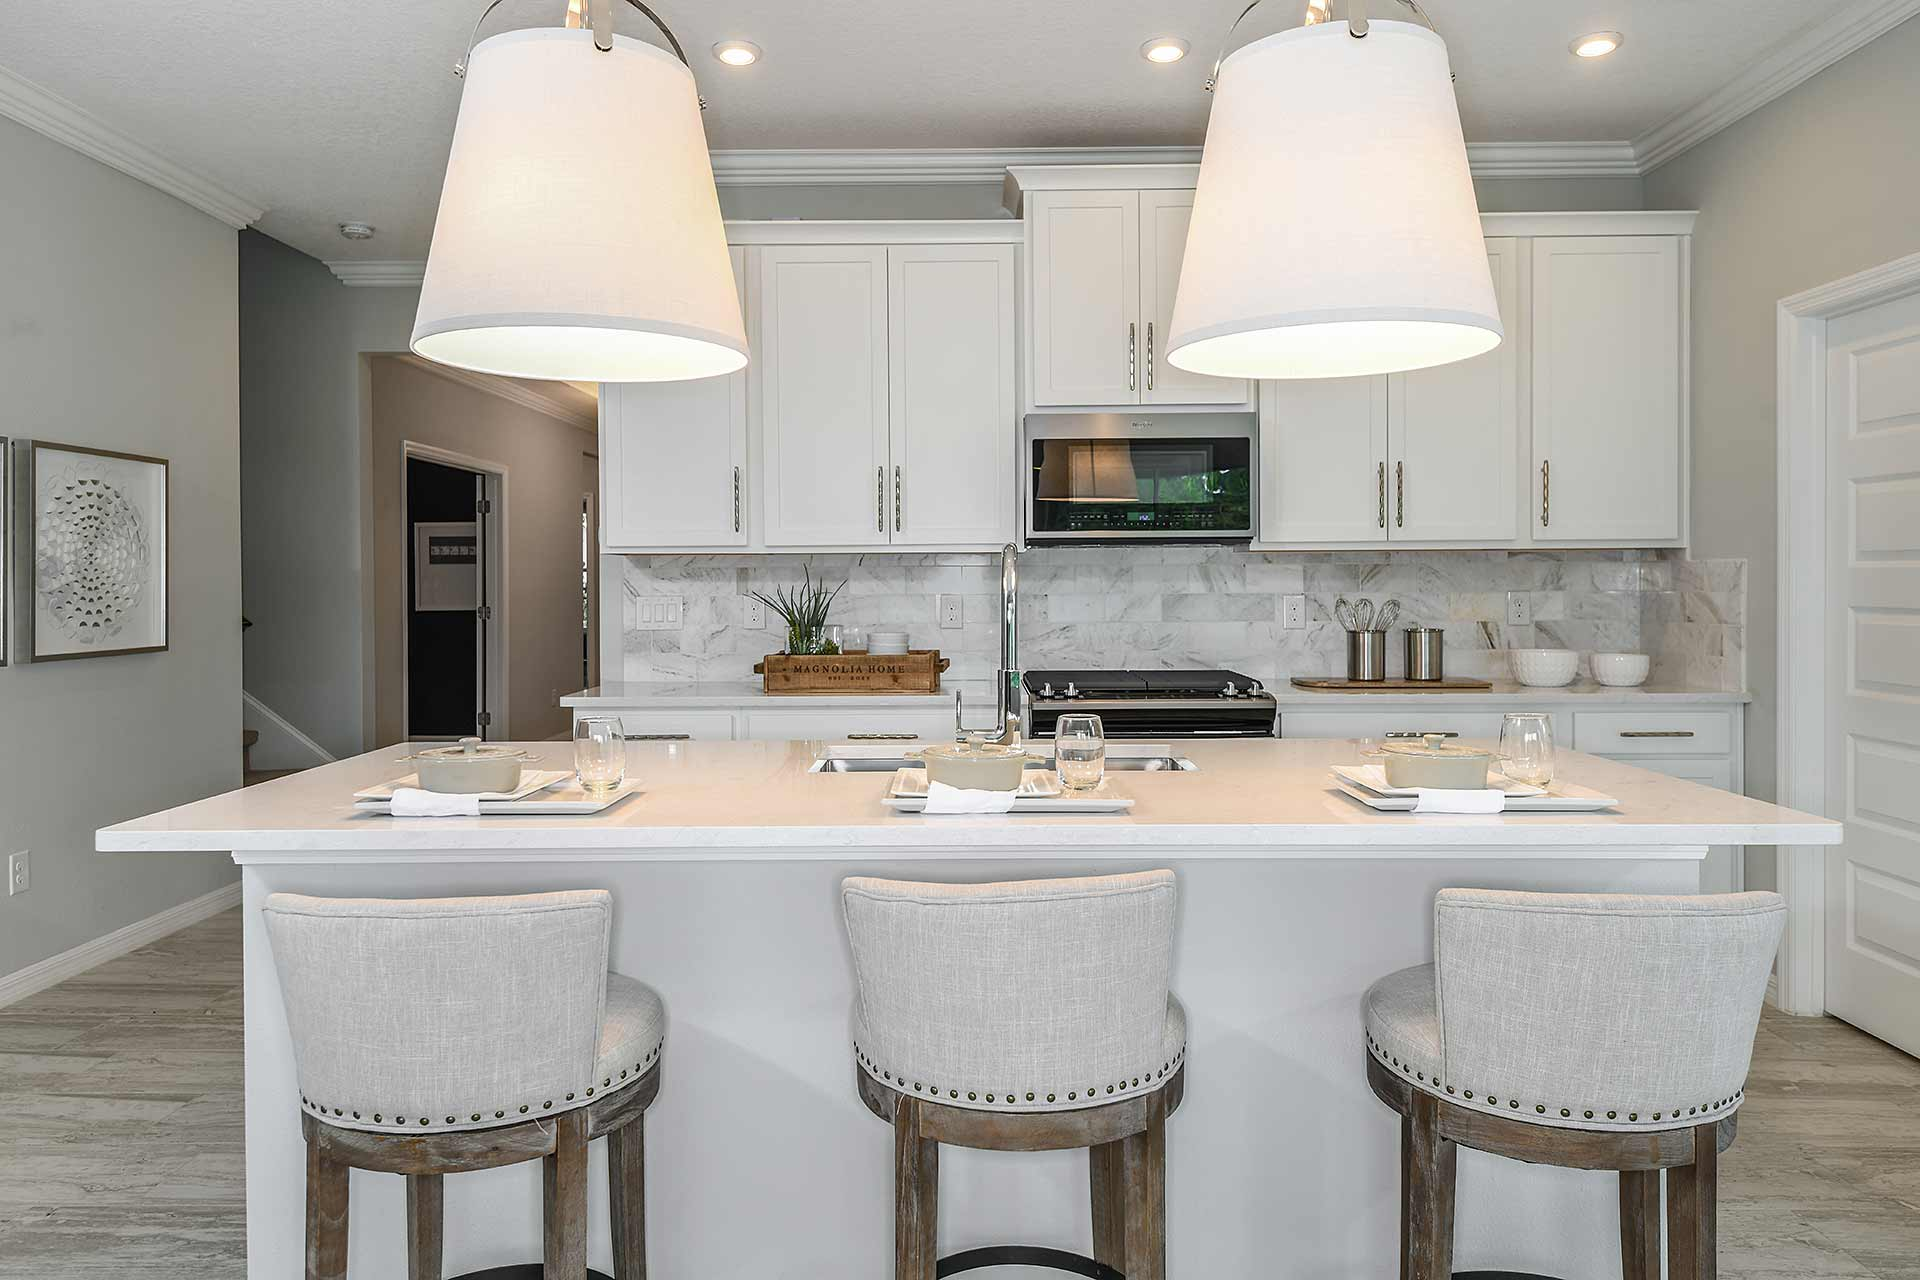 New Tampa  Model Home Northwood in Sandhill Ridge, located at 11411 Tanner Ridge Place (Lot 21) Built By Cardel Homes Tampa